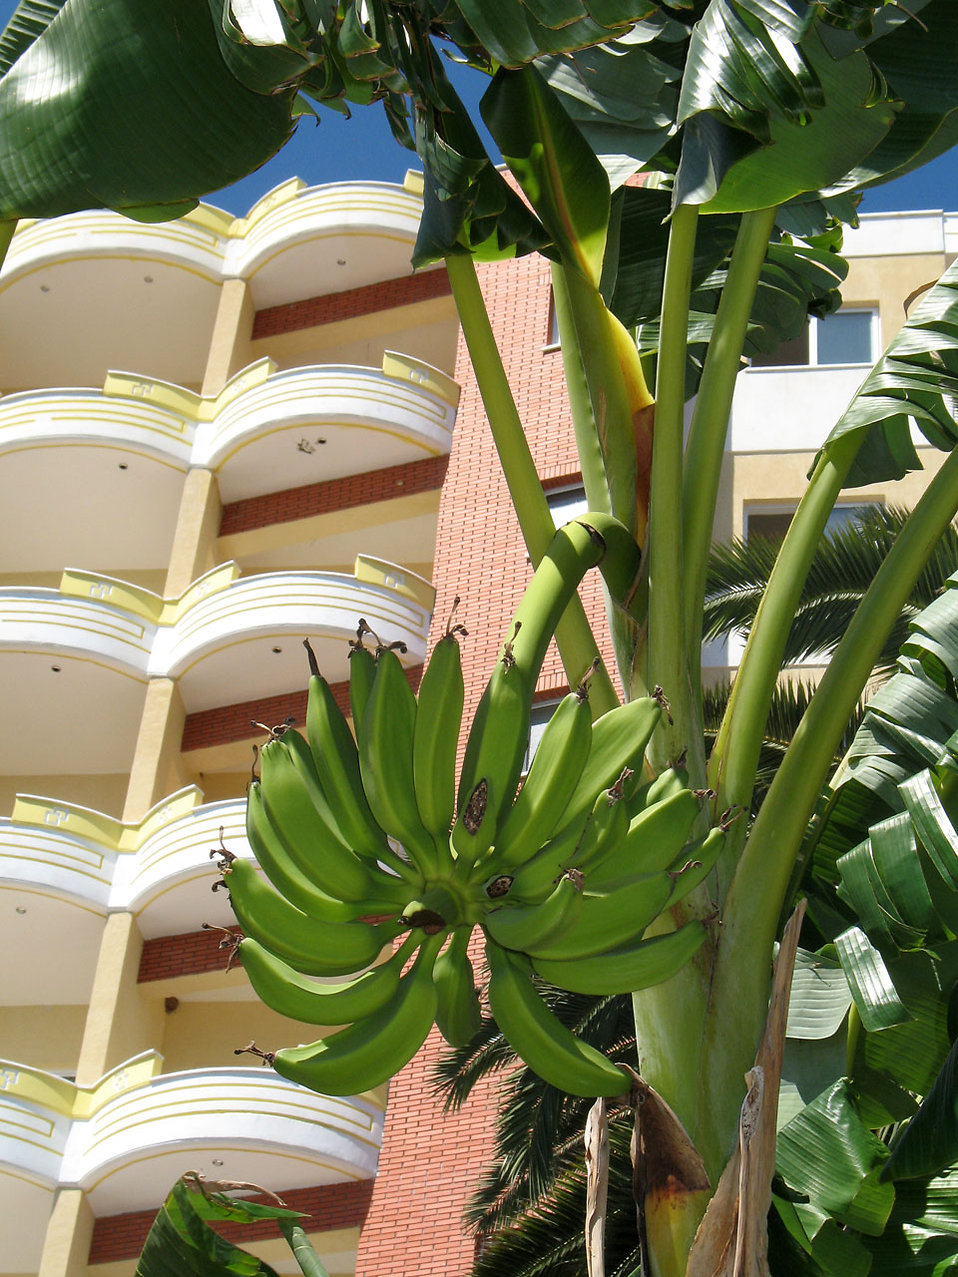 Bananas growin in a tree by a resort : Free Stock Photo